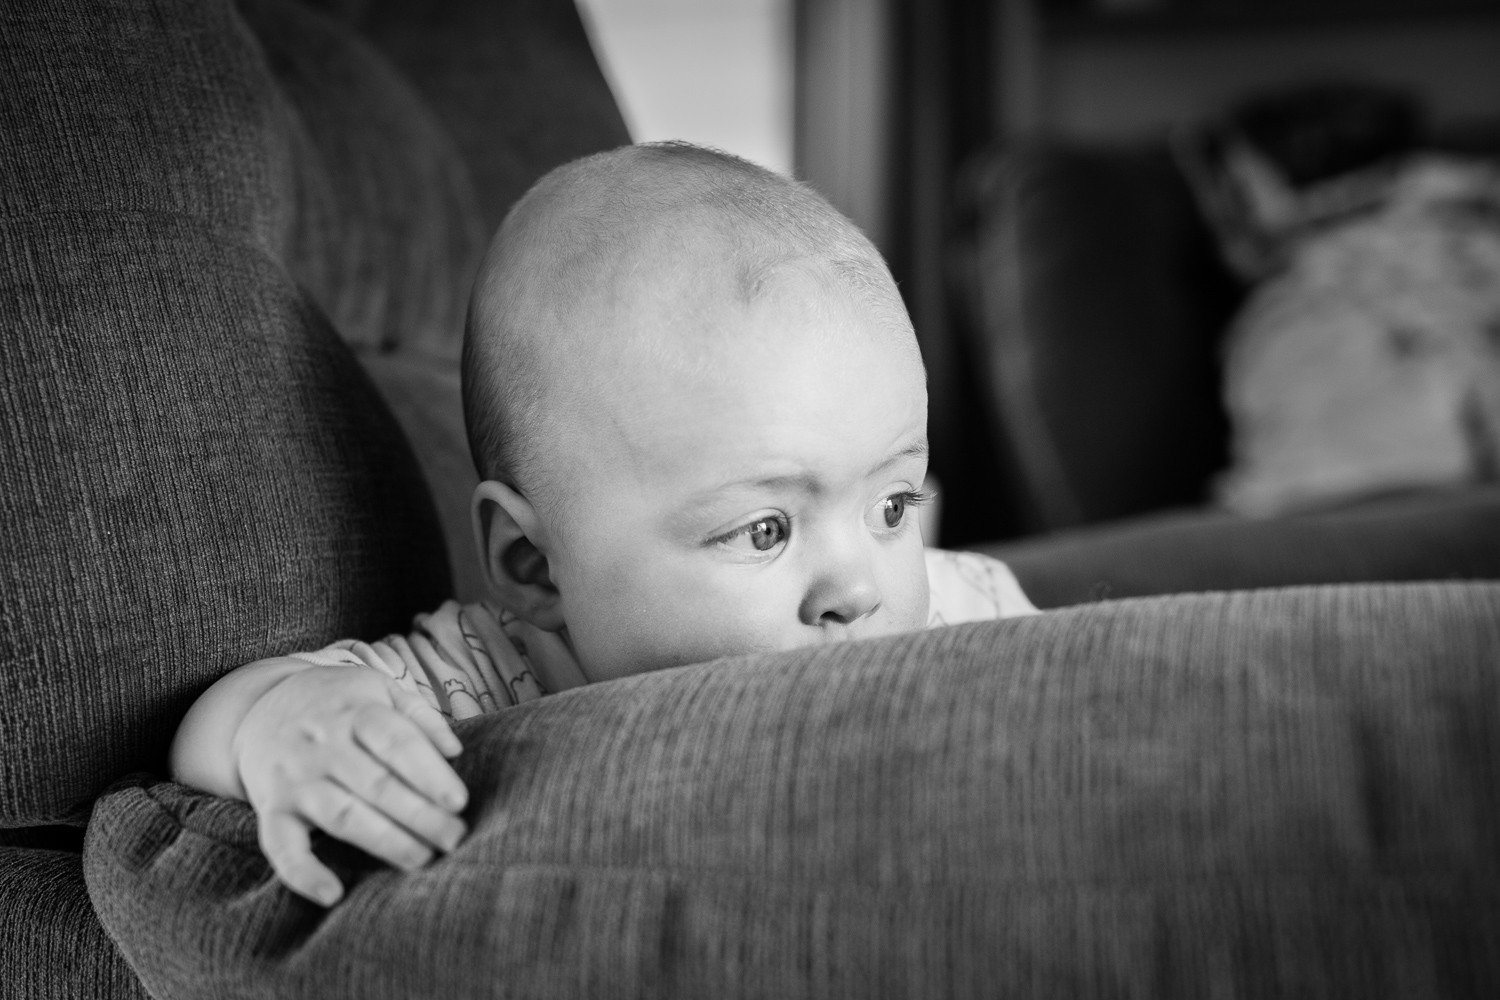 black and white. baby boy leaning over the edge of an arm chair, looking off into the distance.